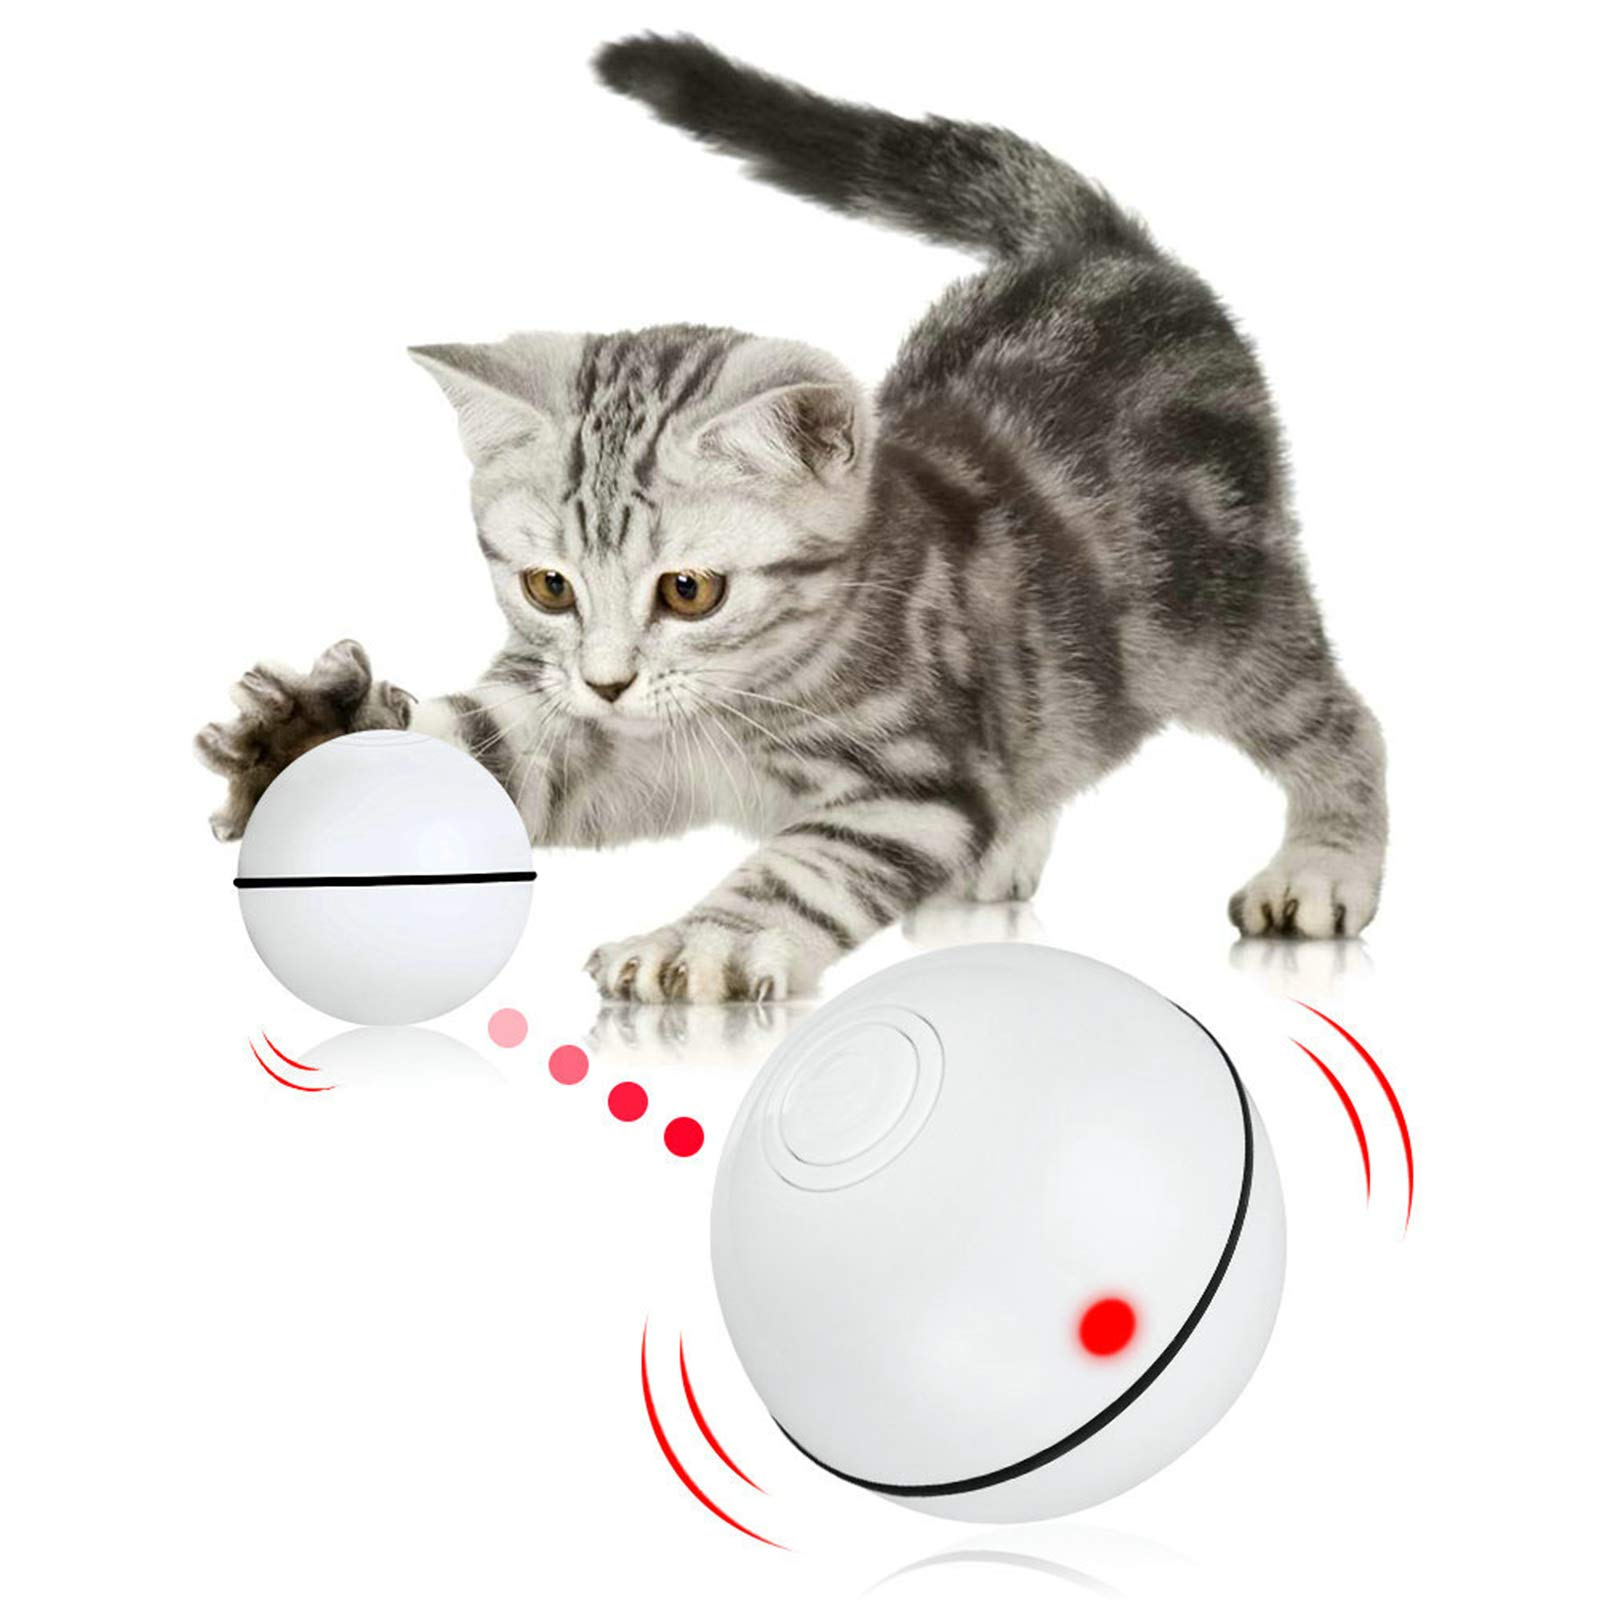 Pakoo Interactive Cat Toys Ball, Smart Automatic Rolling Kitten Toys, USB Rechargeable Motion Ball + Spinning Led Light with Timer Function, The Best Entertainment Exercise Gift for Your Kitty